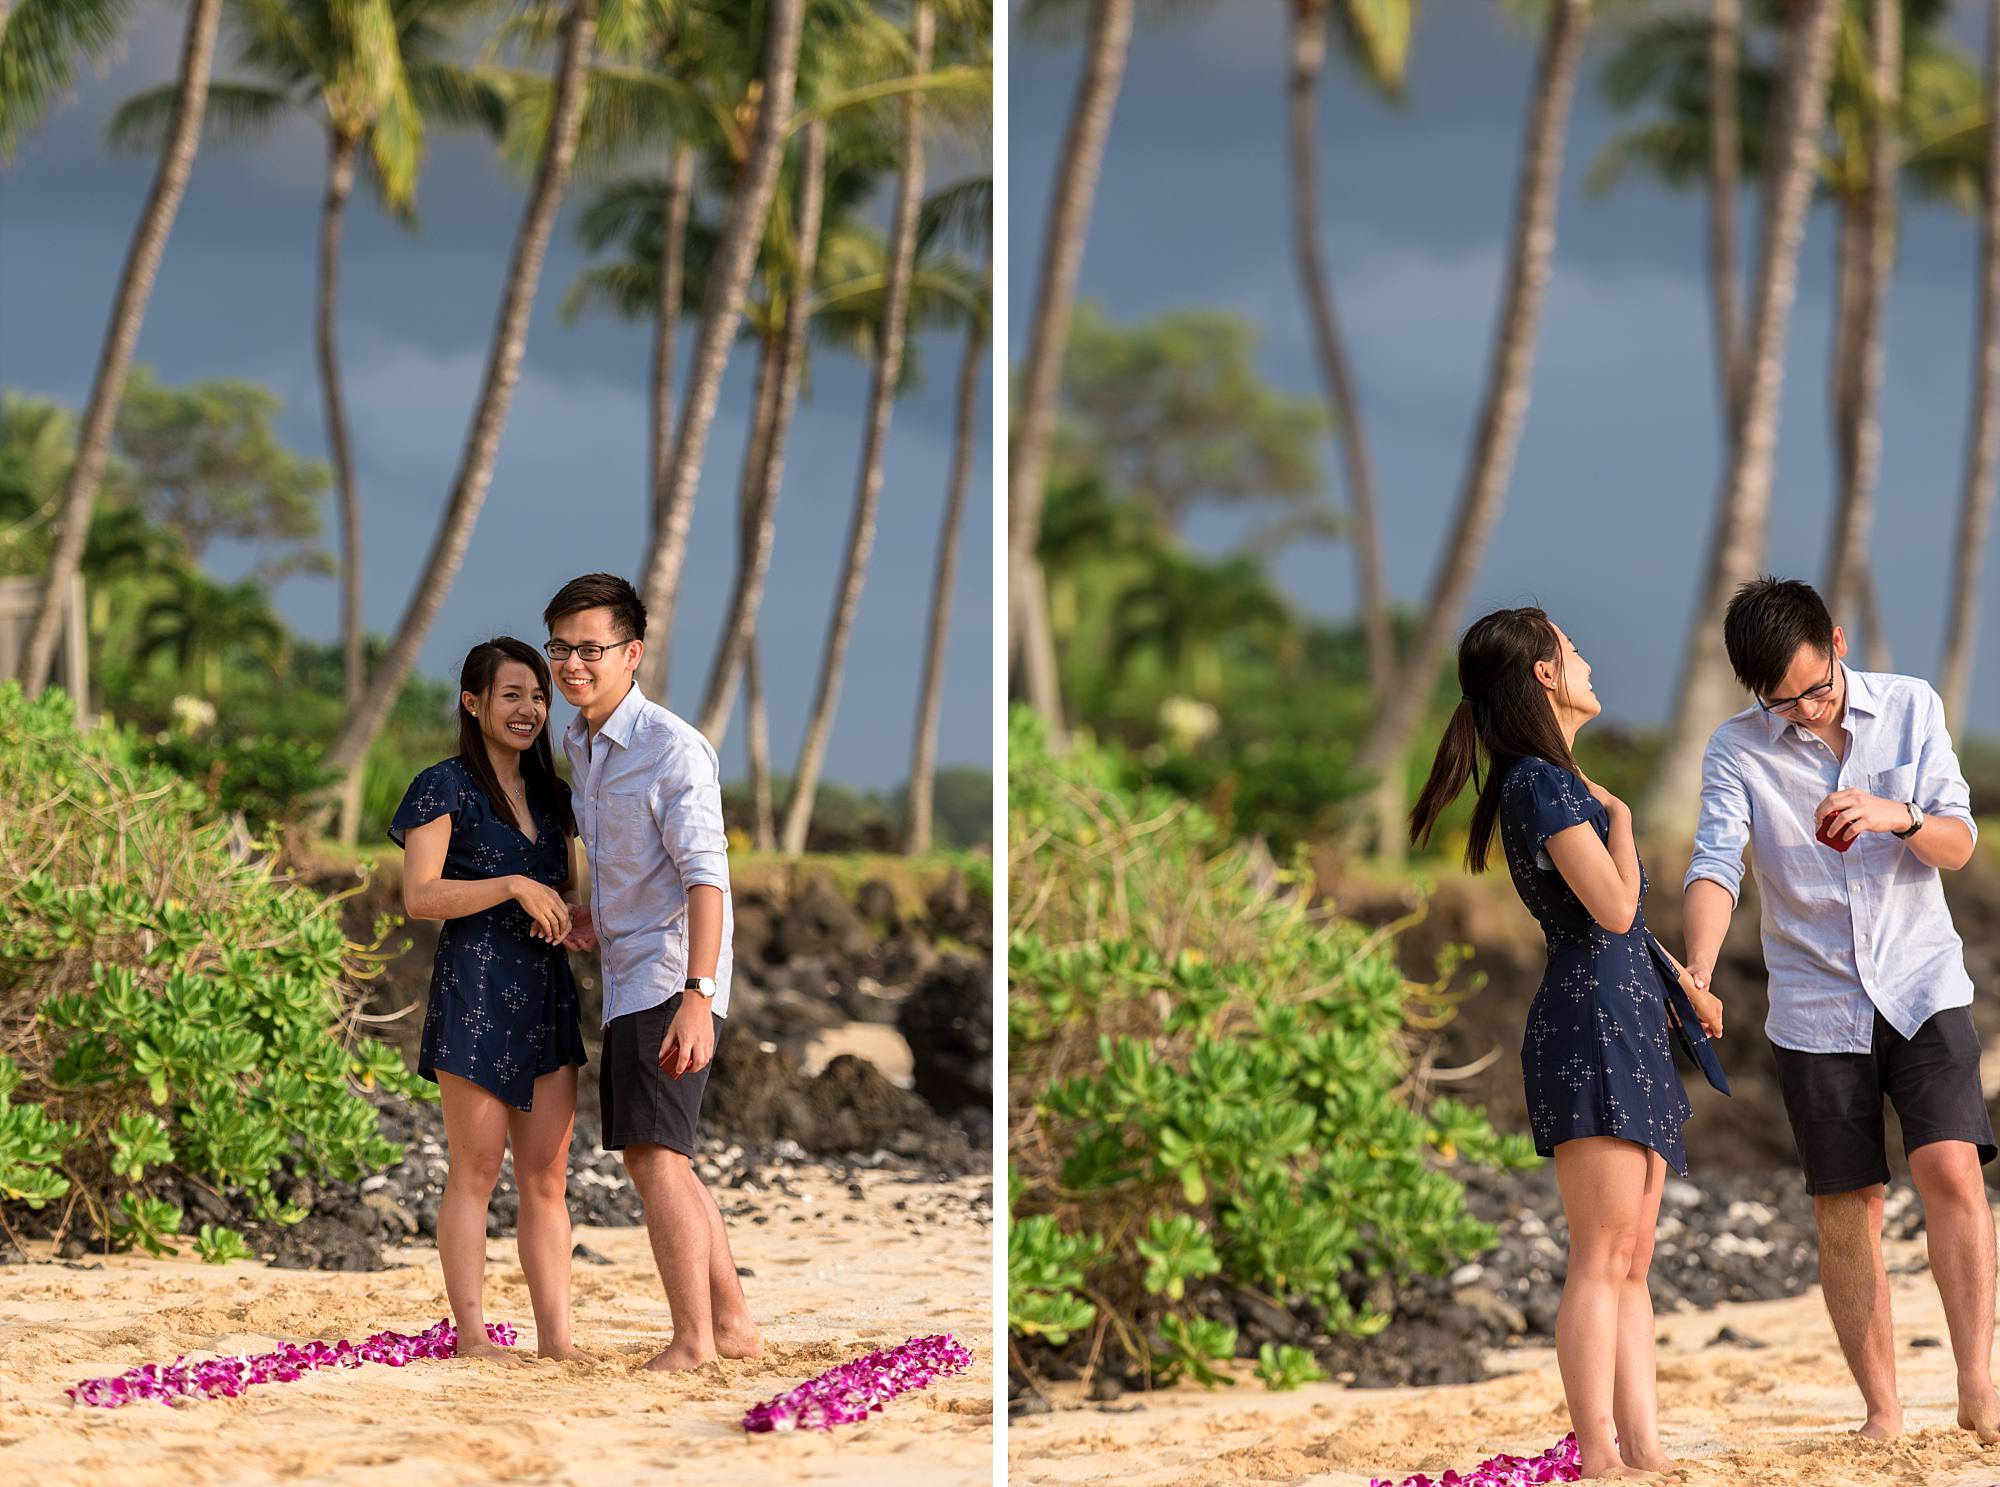 newly engaged couple standing together on a beach, her laughing in surprise as he points out the photographer